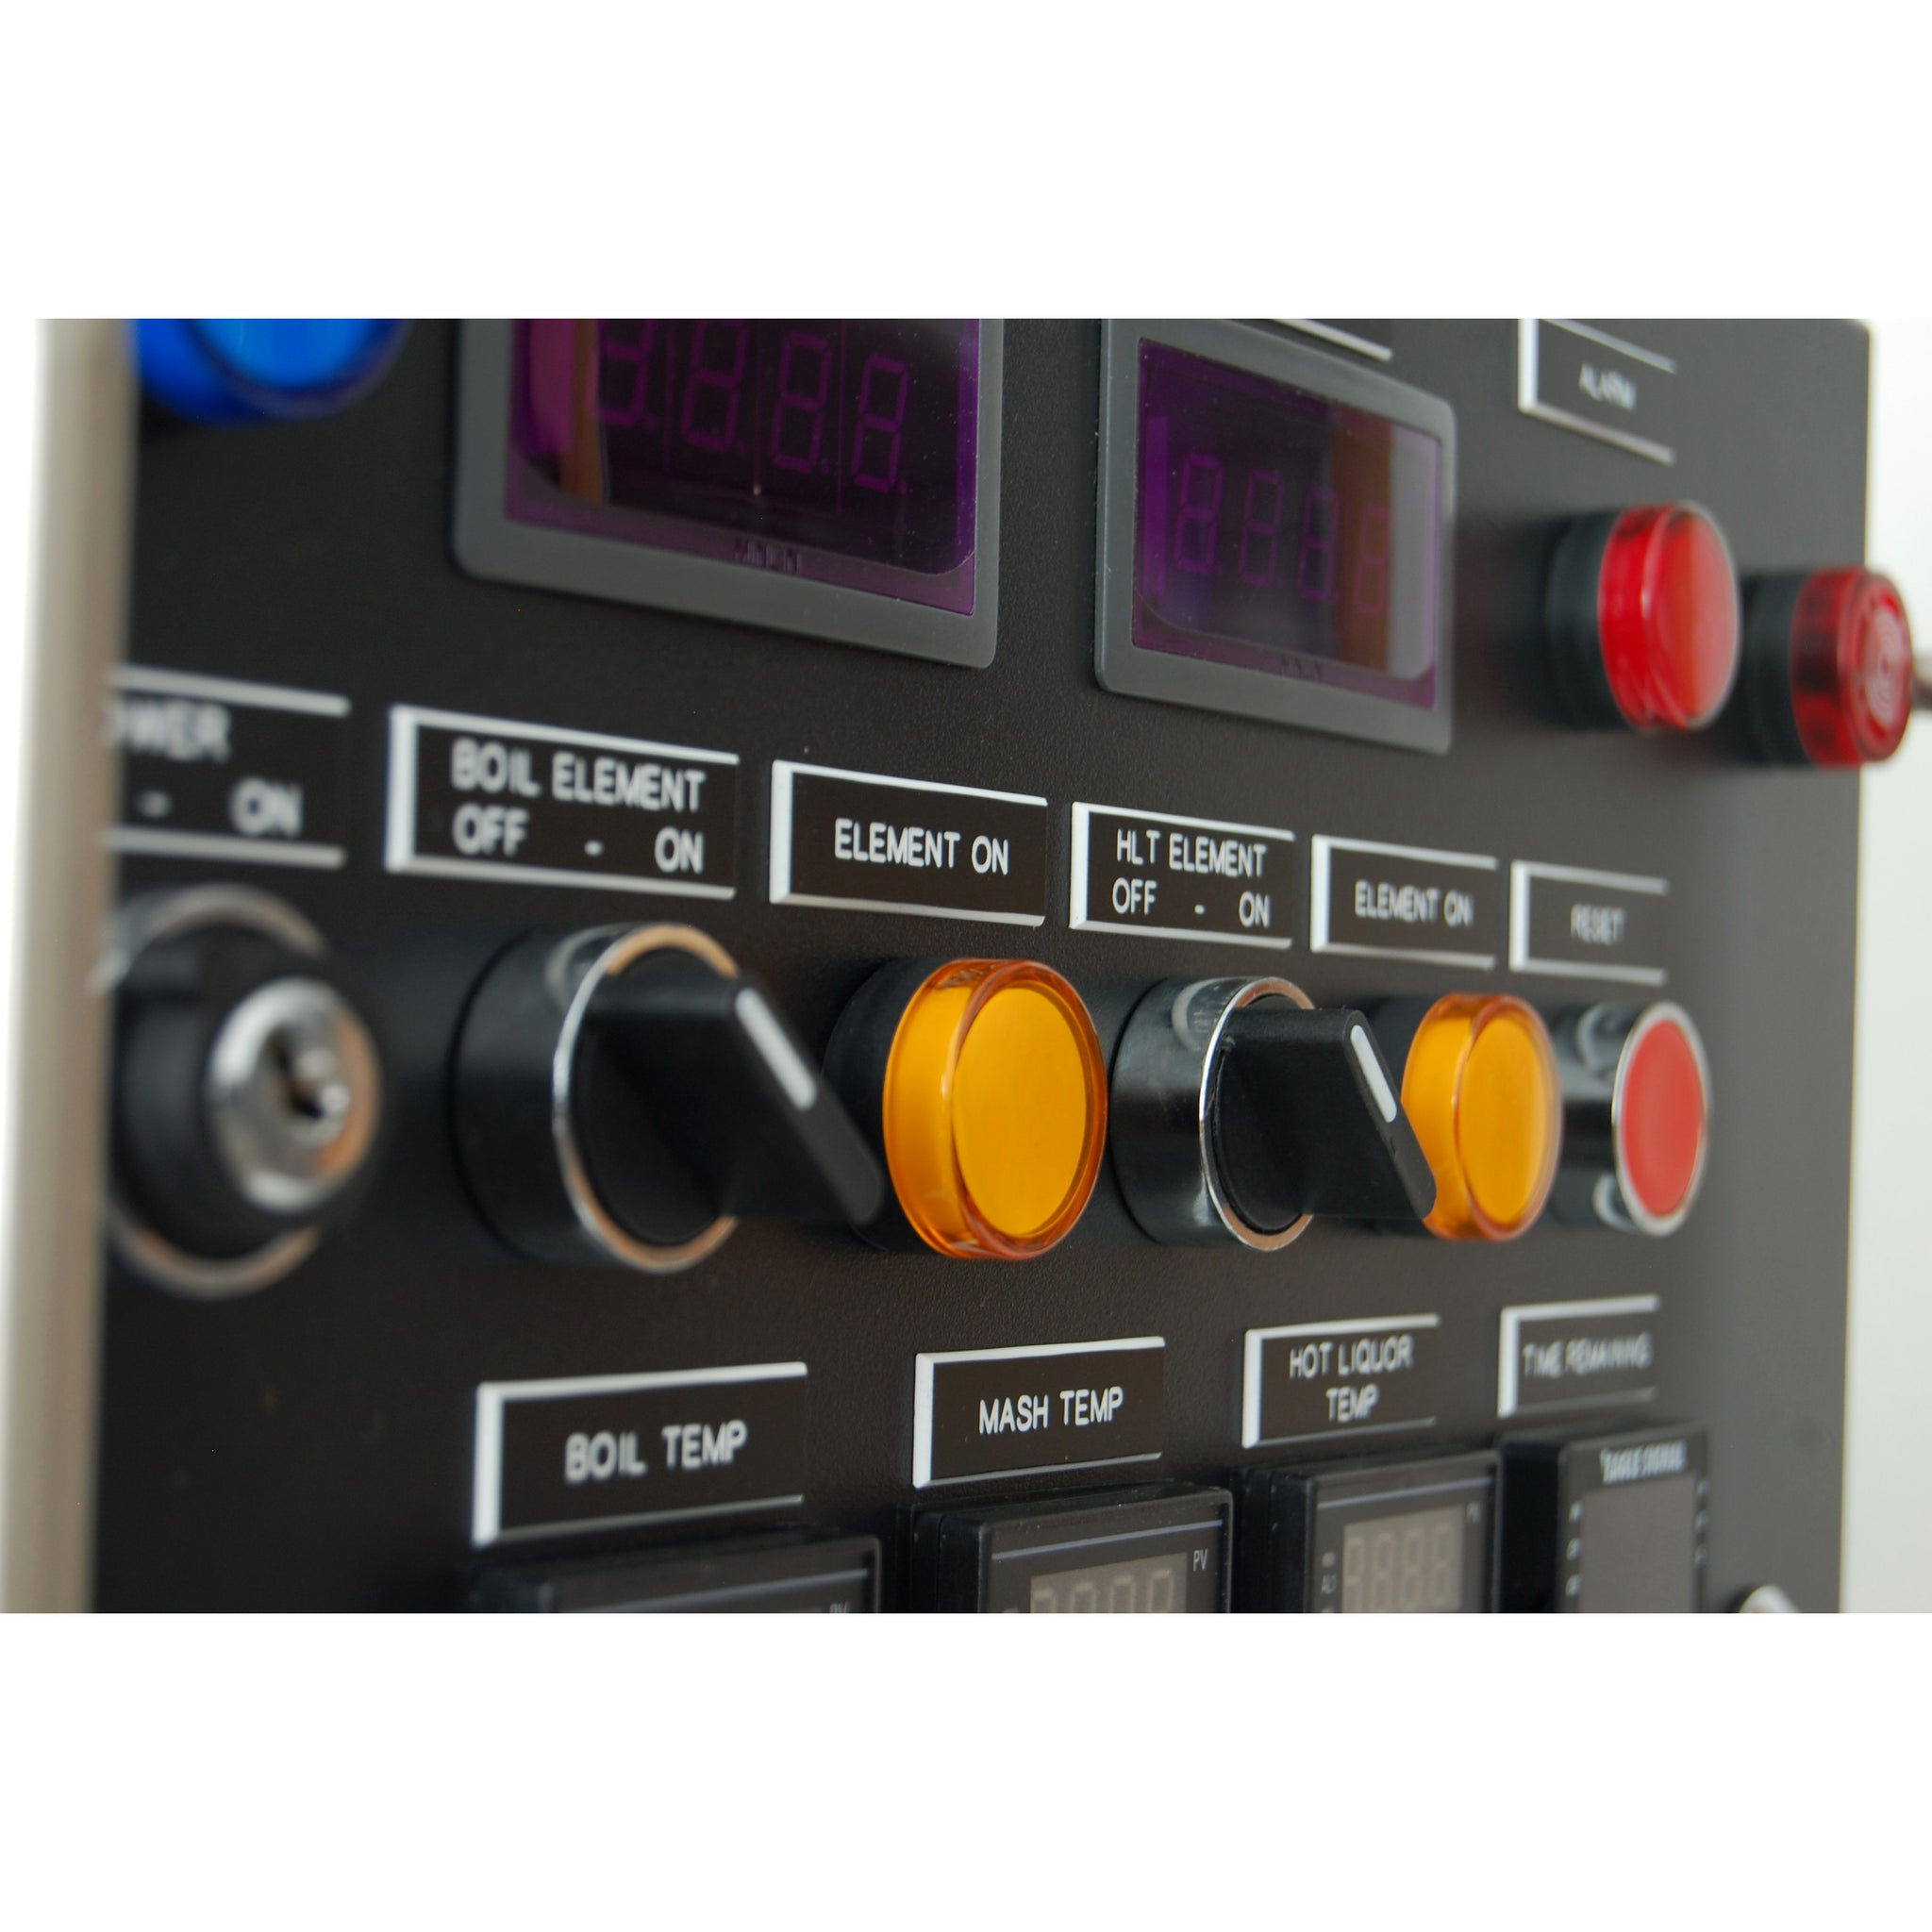 Control Panels - The Electric Brewery